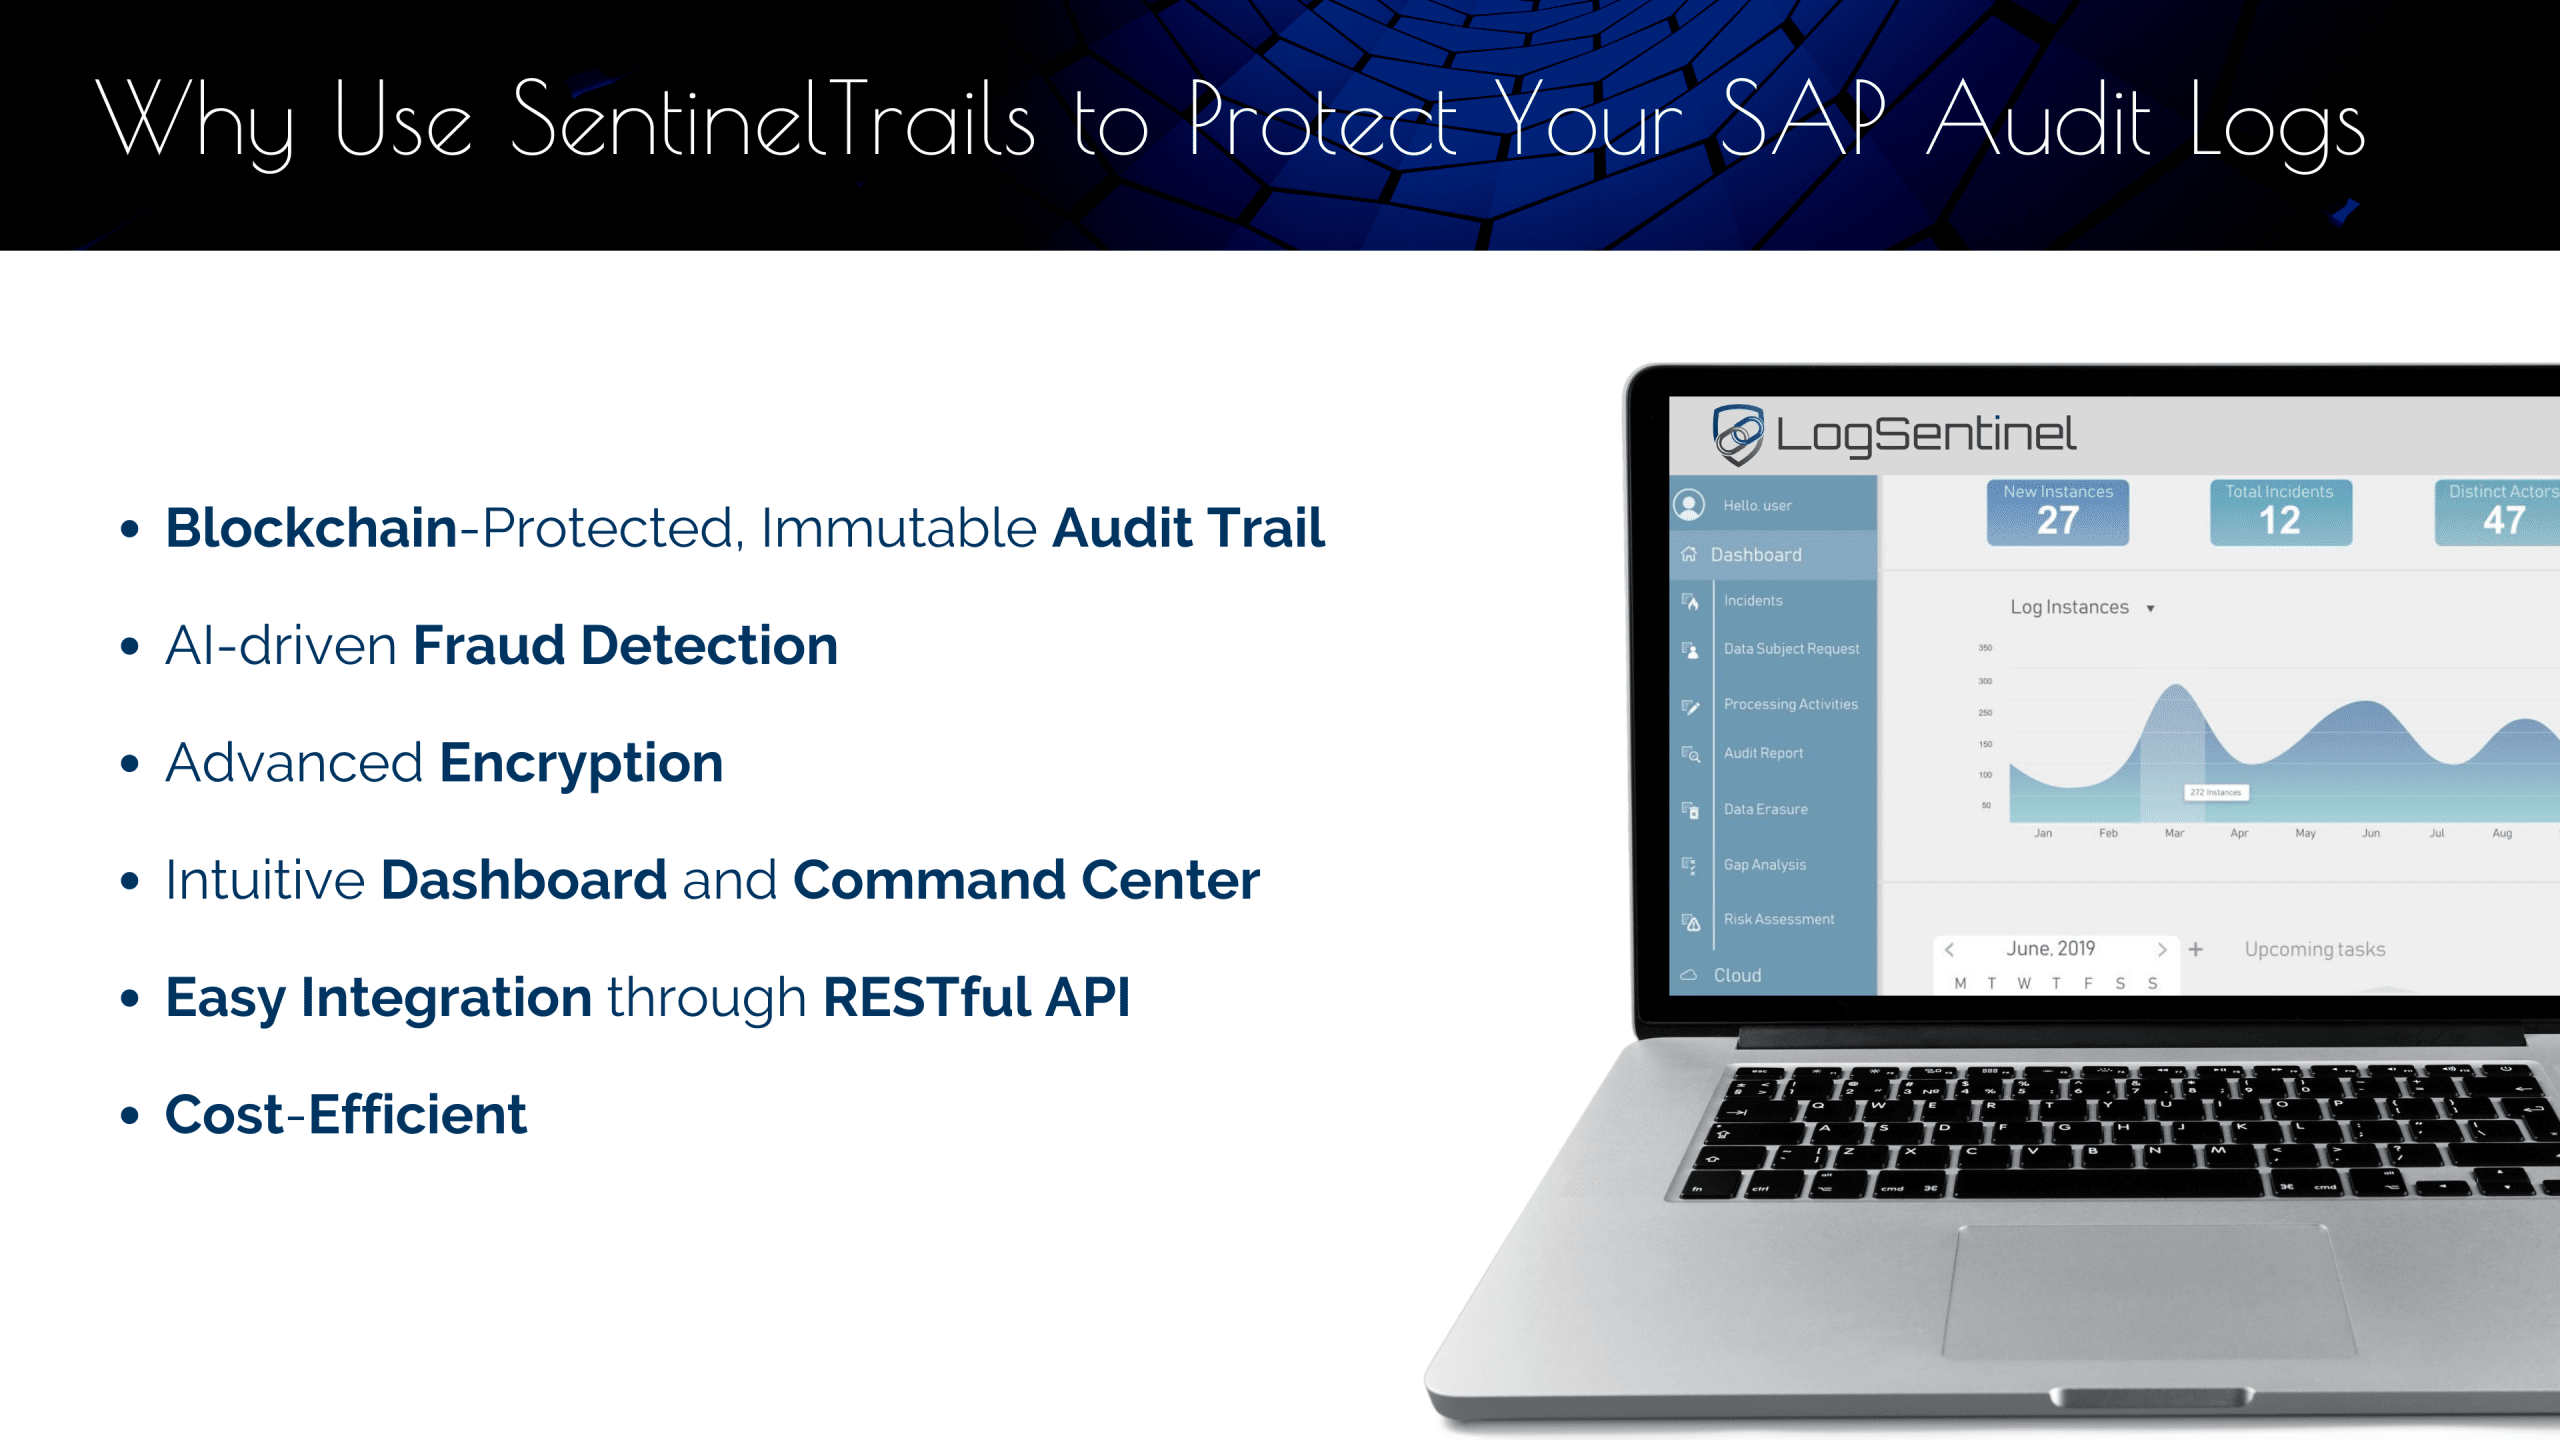 SentinelTrails' features to protect SAP audit logs